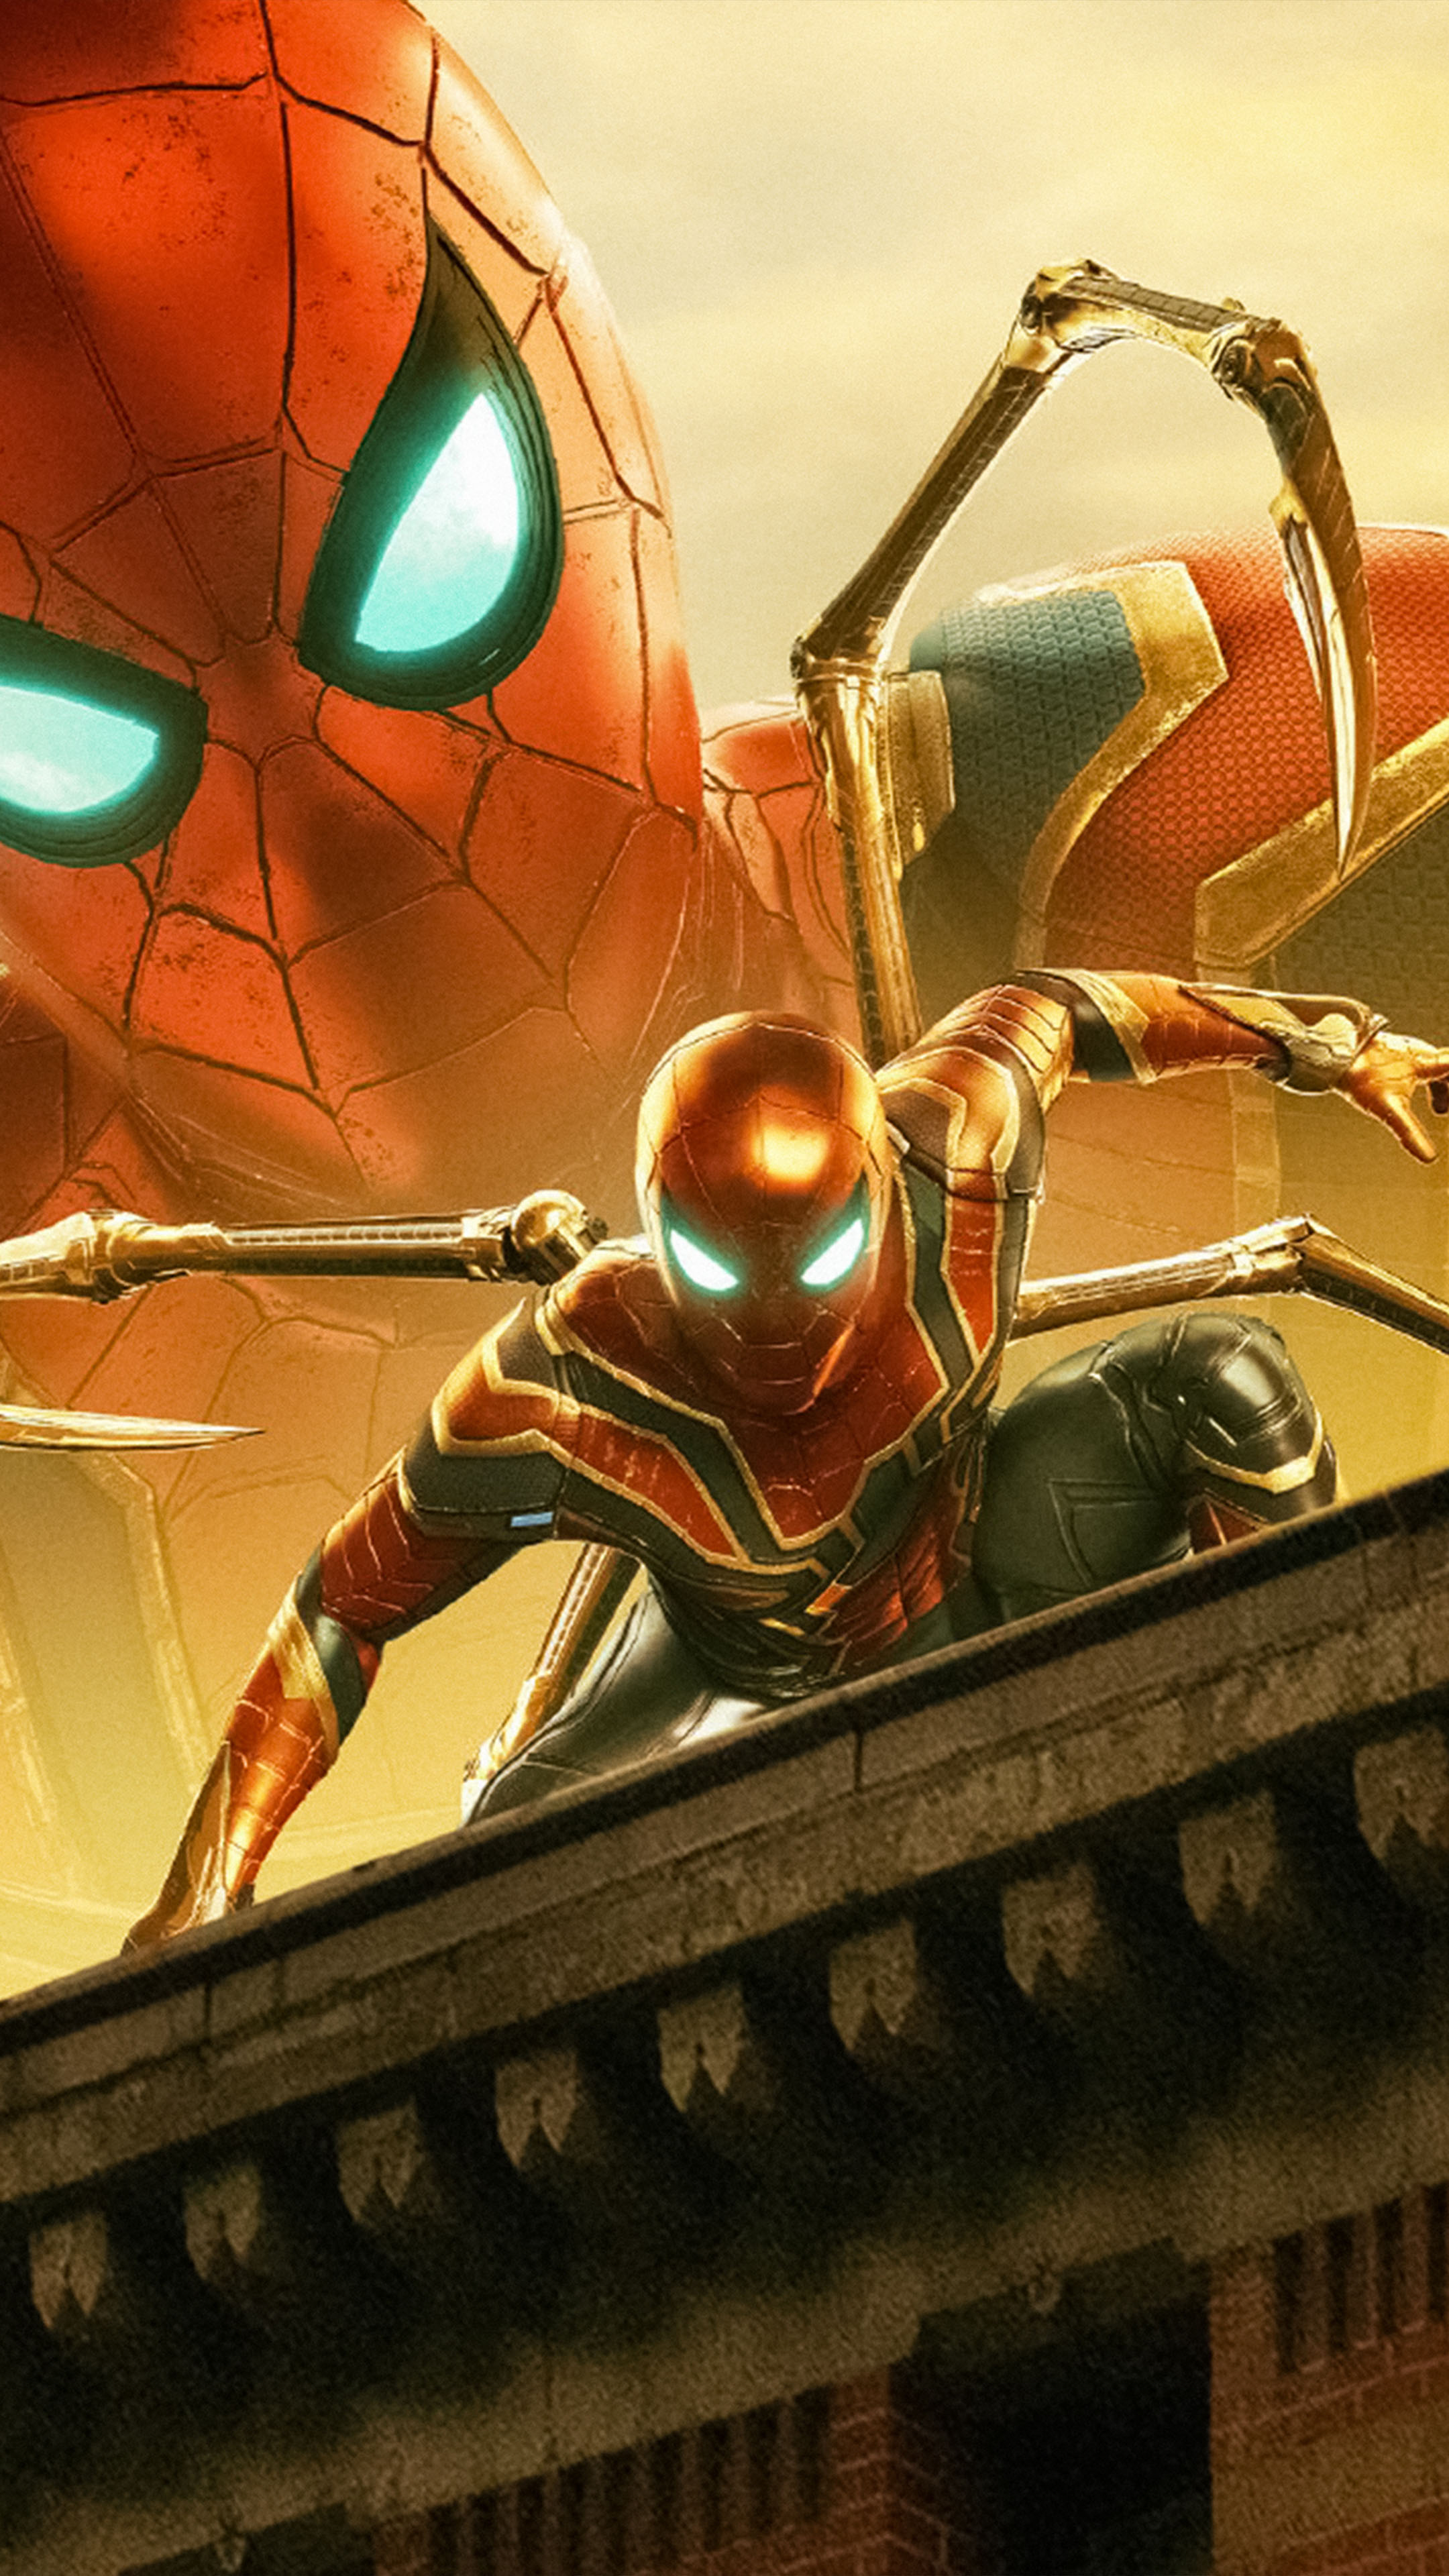 Iron Spider Spider Man Far From Home 2019 Free 4k Ultra Hd